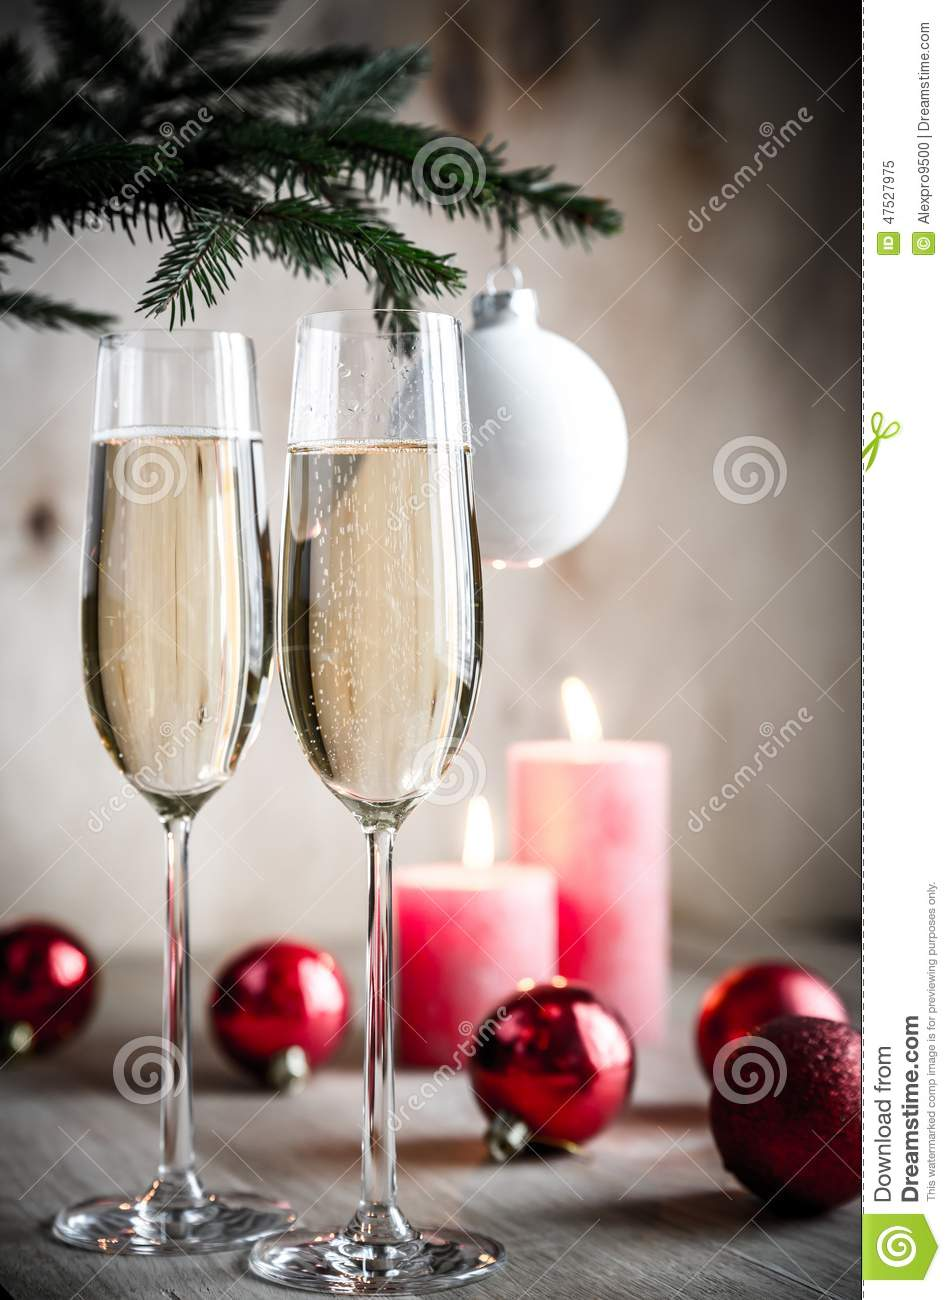 Glasses of champagne under decorated christmas tree branch